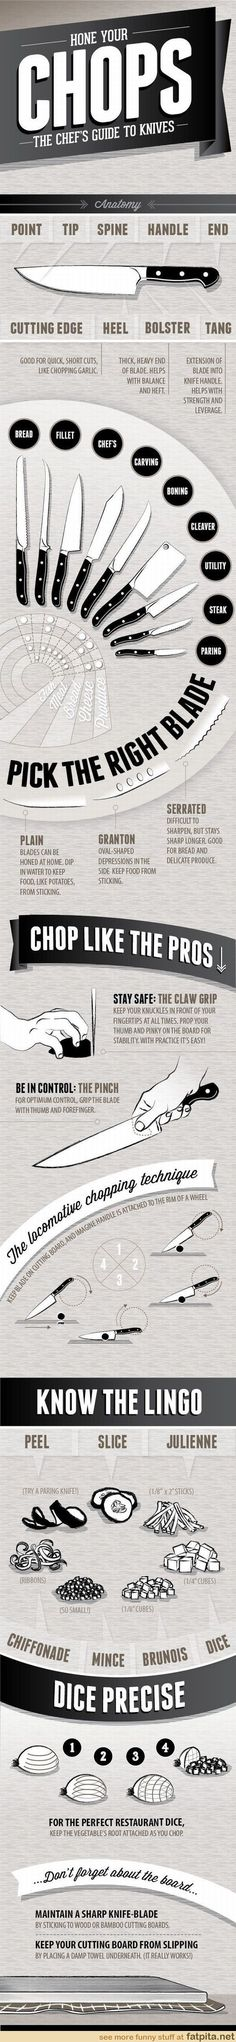 Perfect guide for knives and how to use them